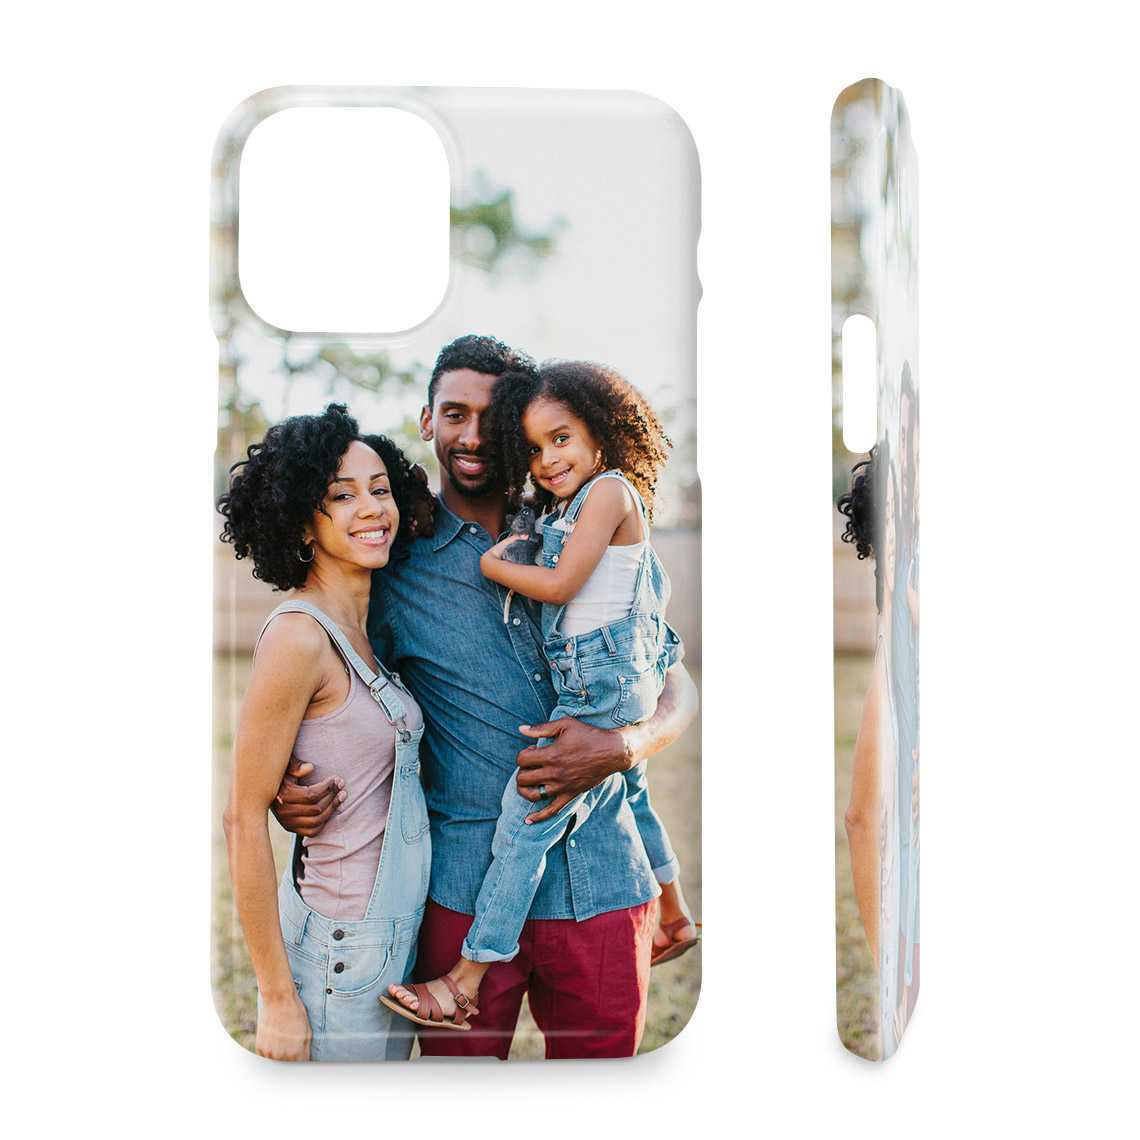 Personalised Iphone 11 Pro Cases